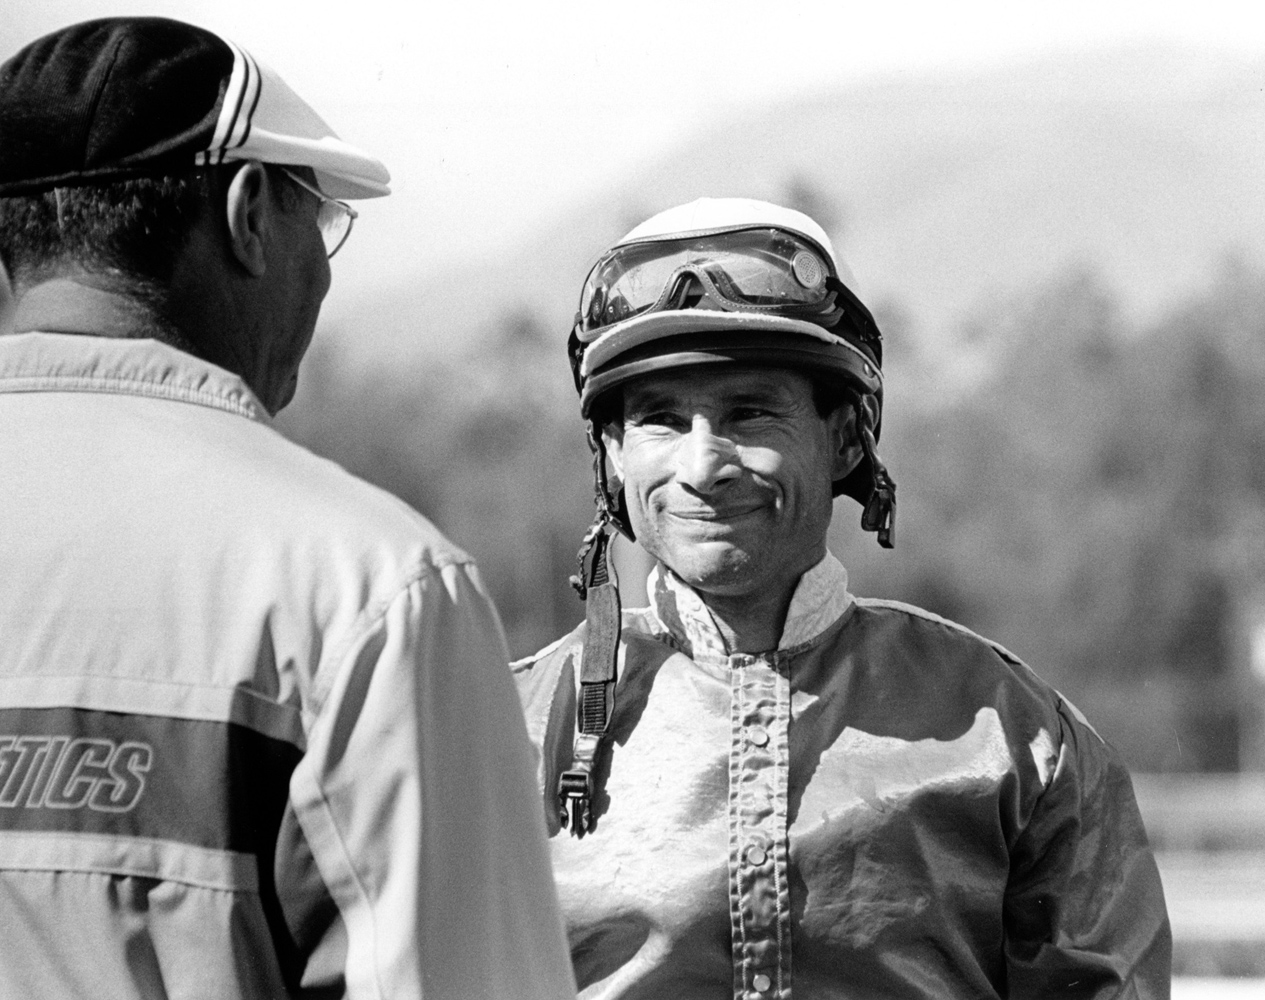 Alex Solis after five consecutive wins at Santa Anita on Feb. 20, 2006 (Bill Mochon/Museum Collection)